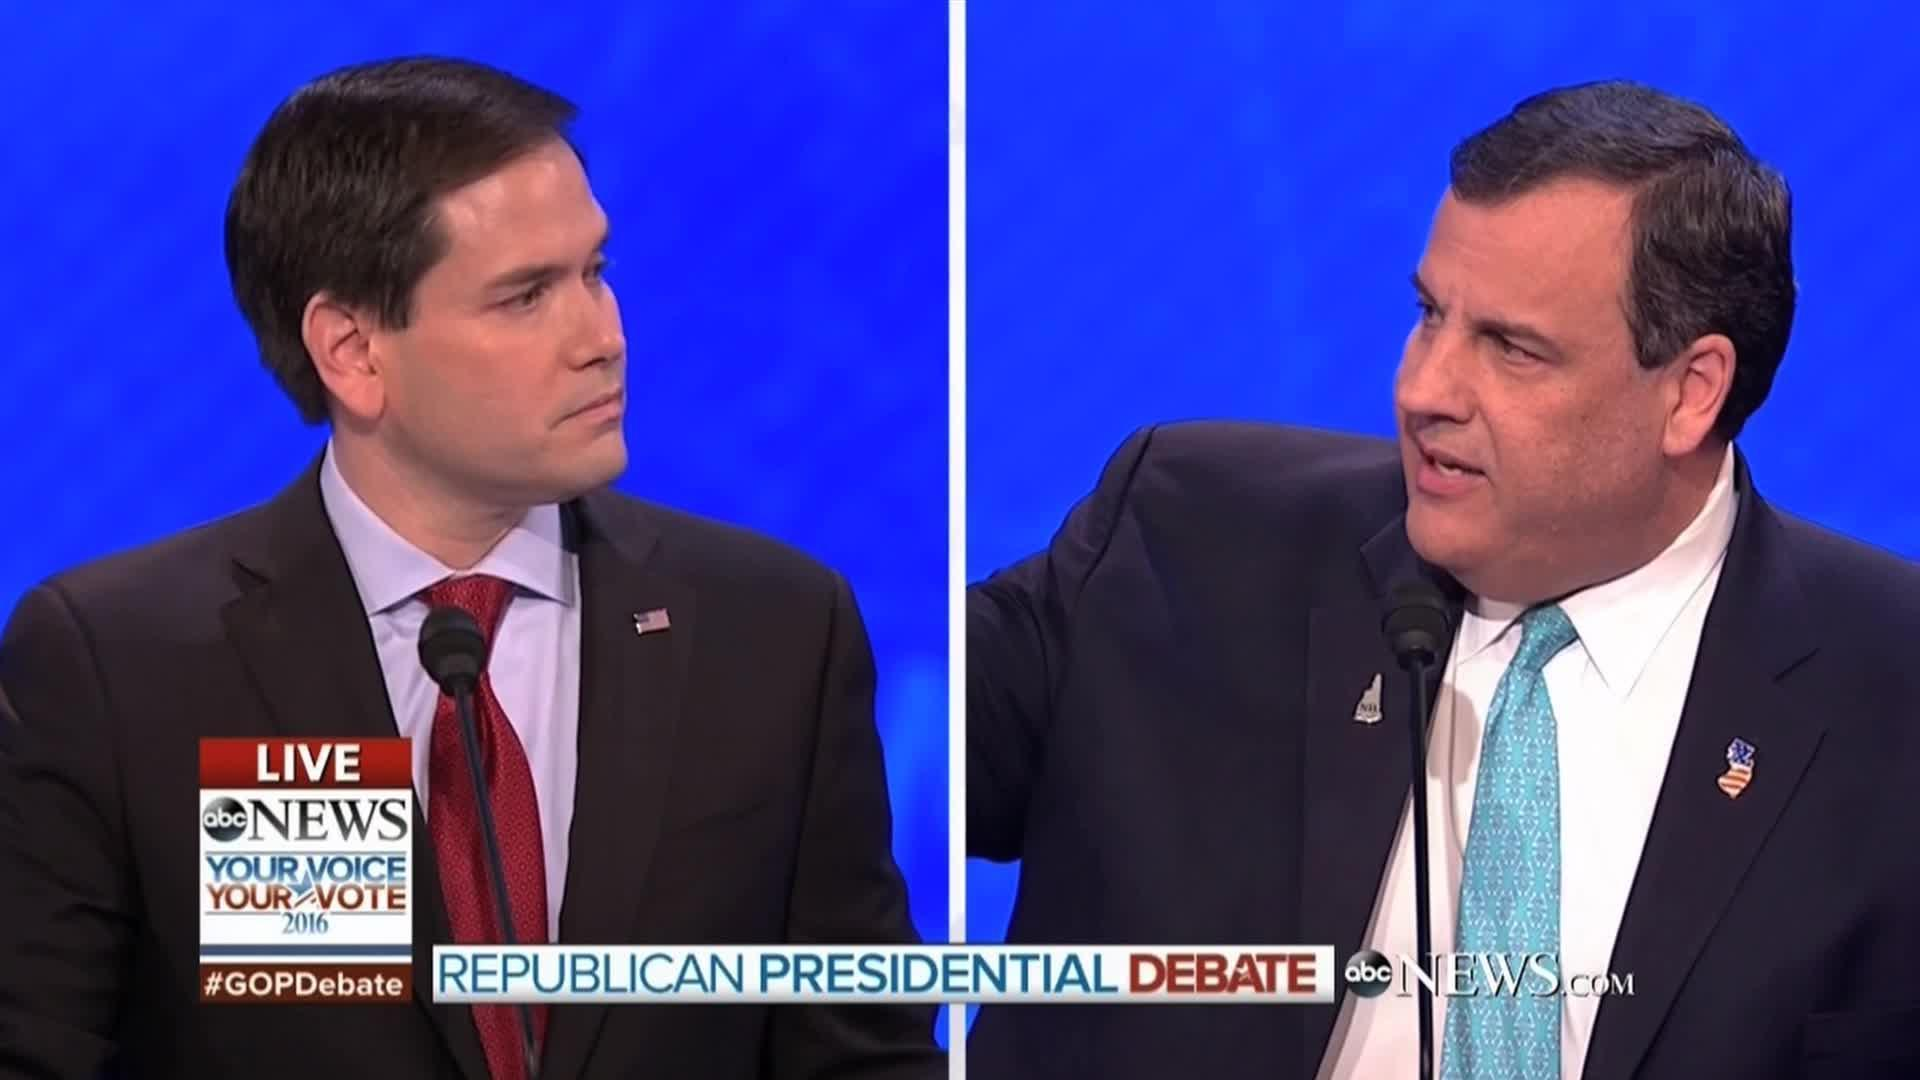 Chris Christie's attacks rattle Marco Rubio